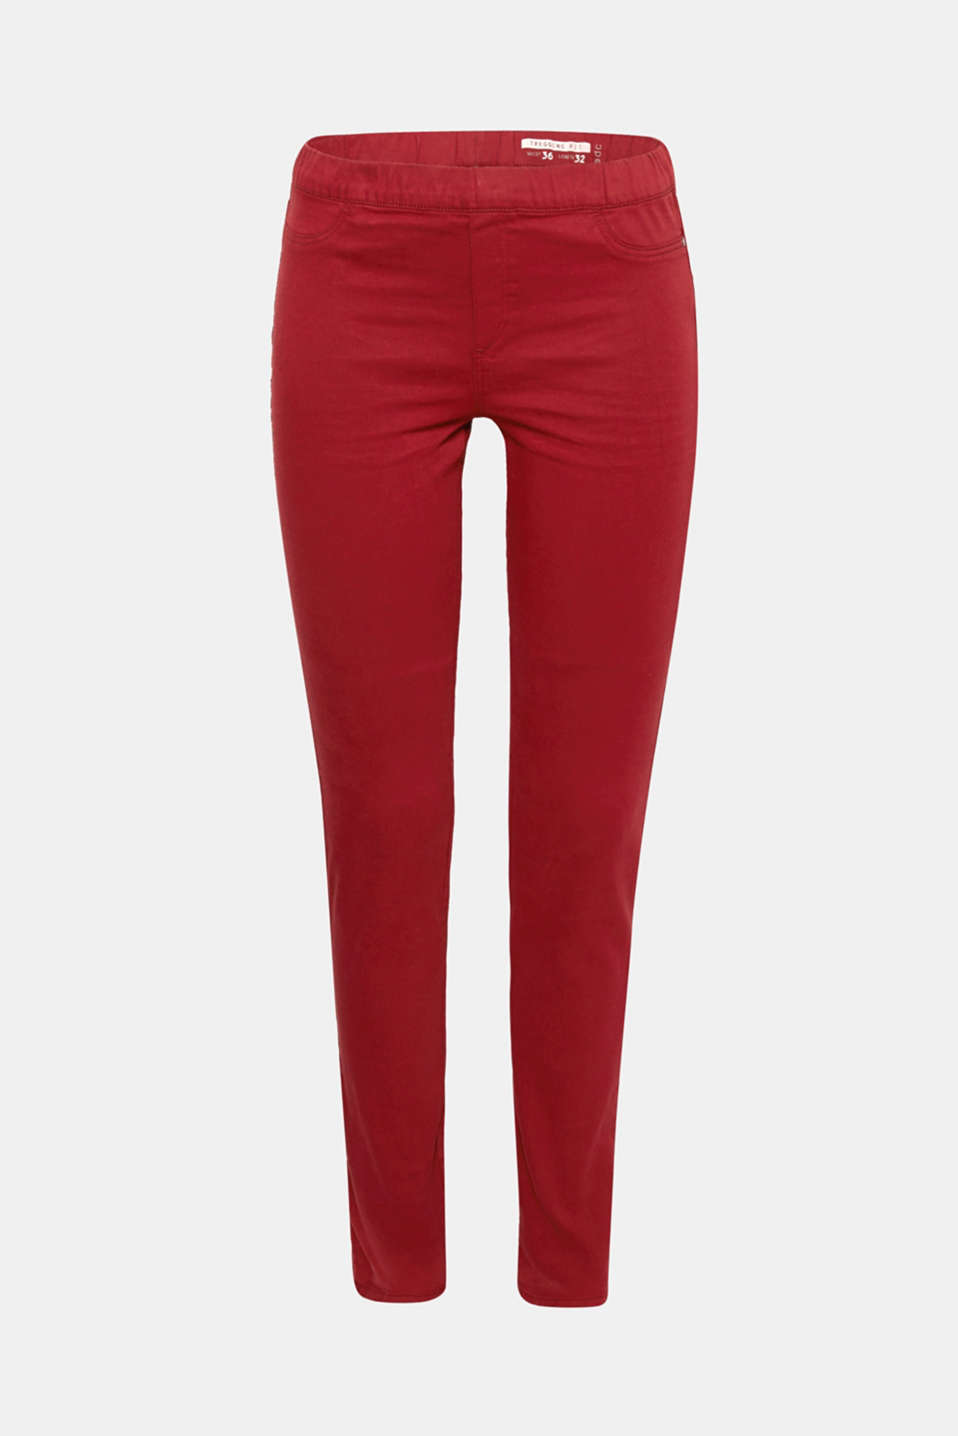 These treggings in stretchy blended cotton with an elasticated waistband hug the body perfectly and offer countless outfit options.